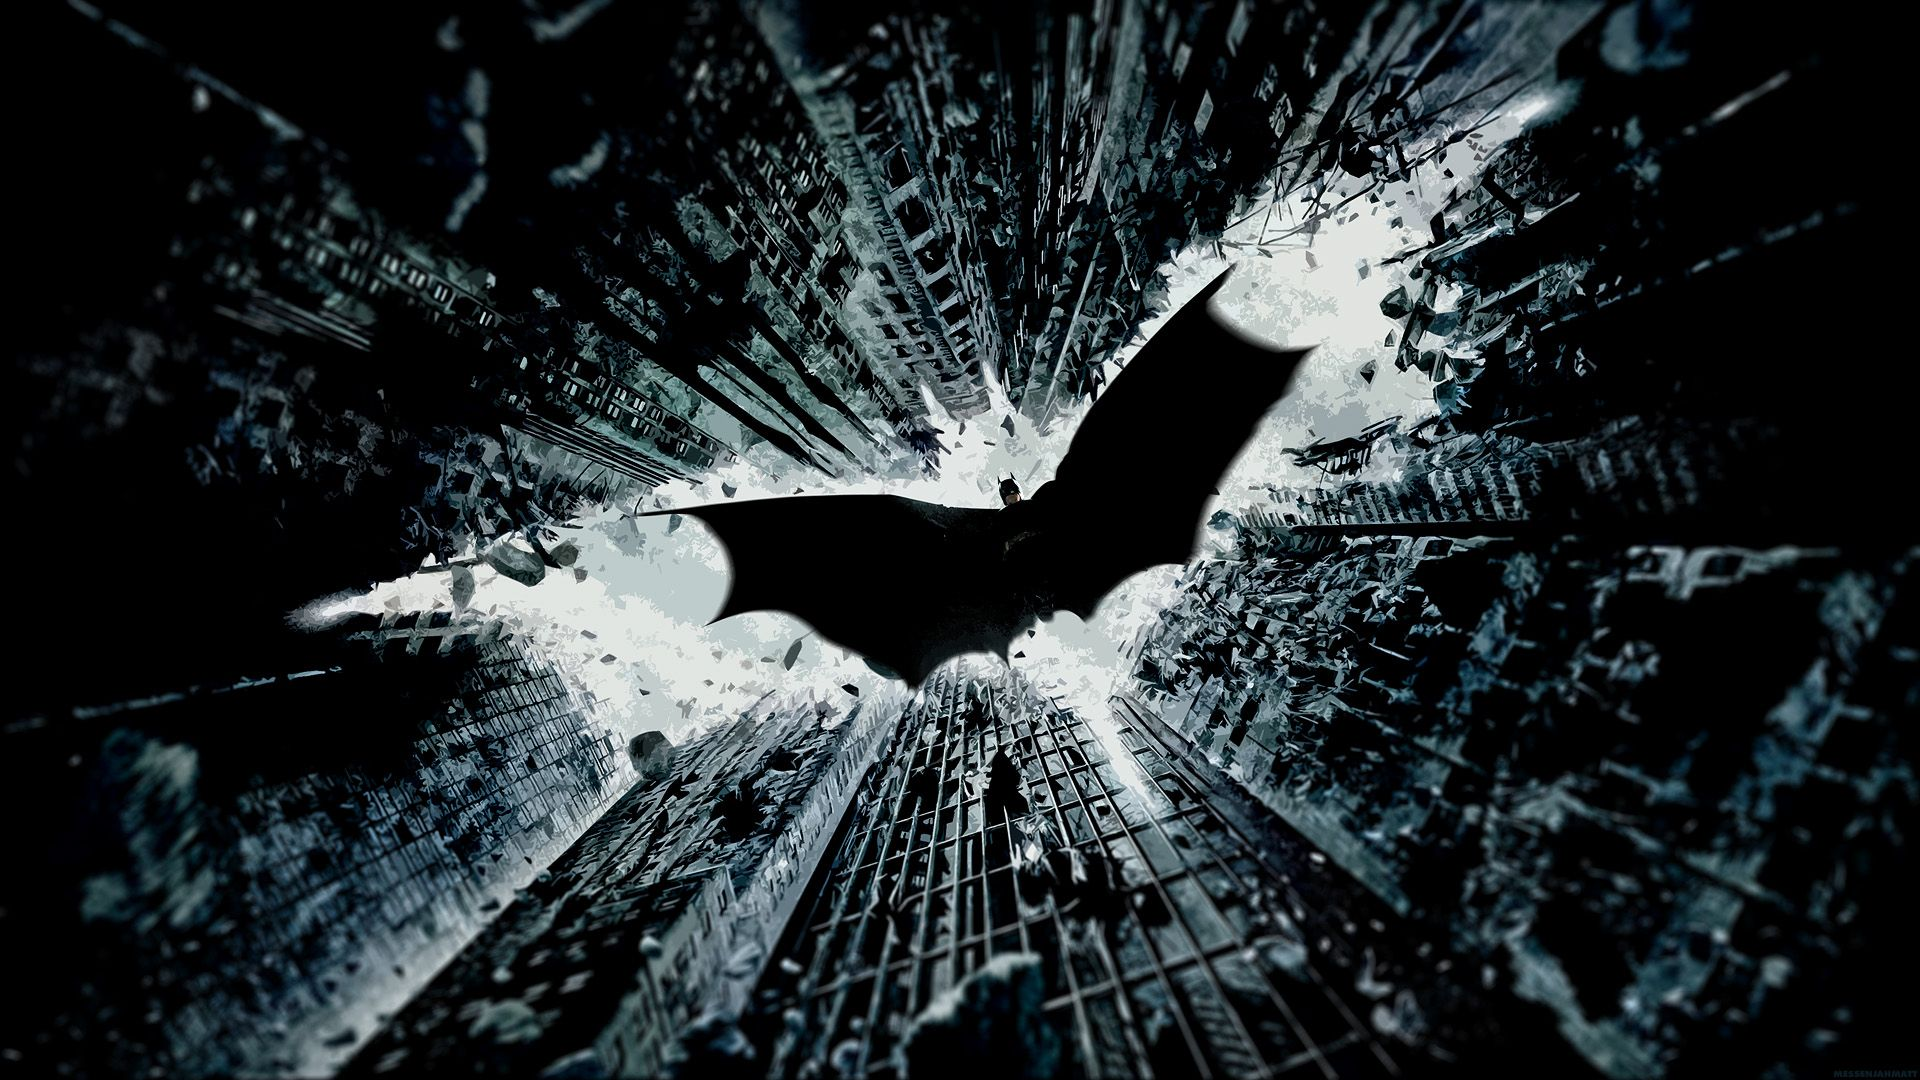 Batman The Dark Knight Rises Batman Wallpaper Dark Knight